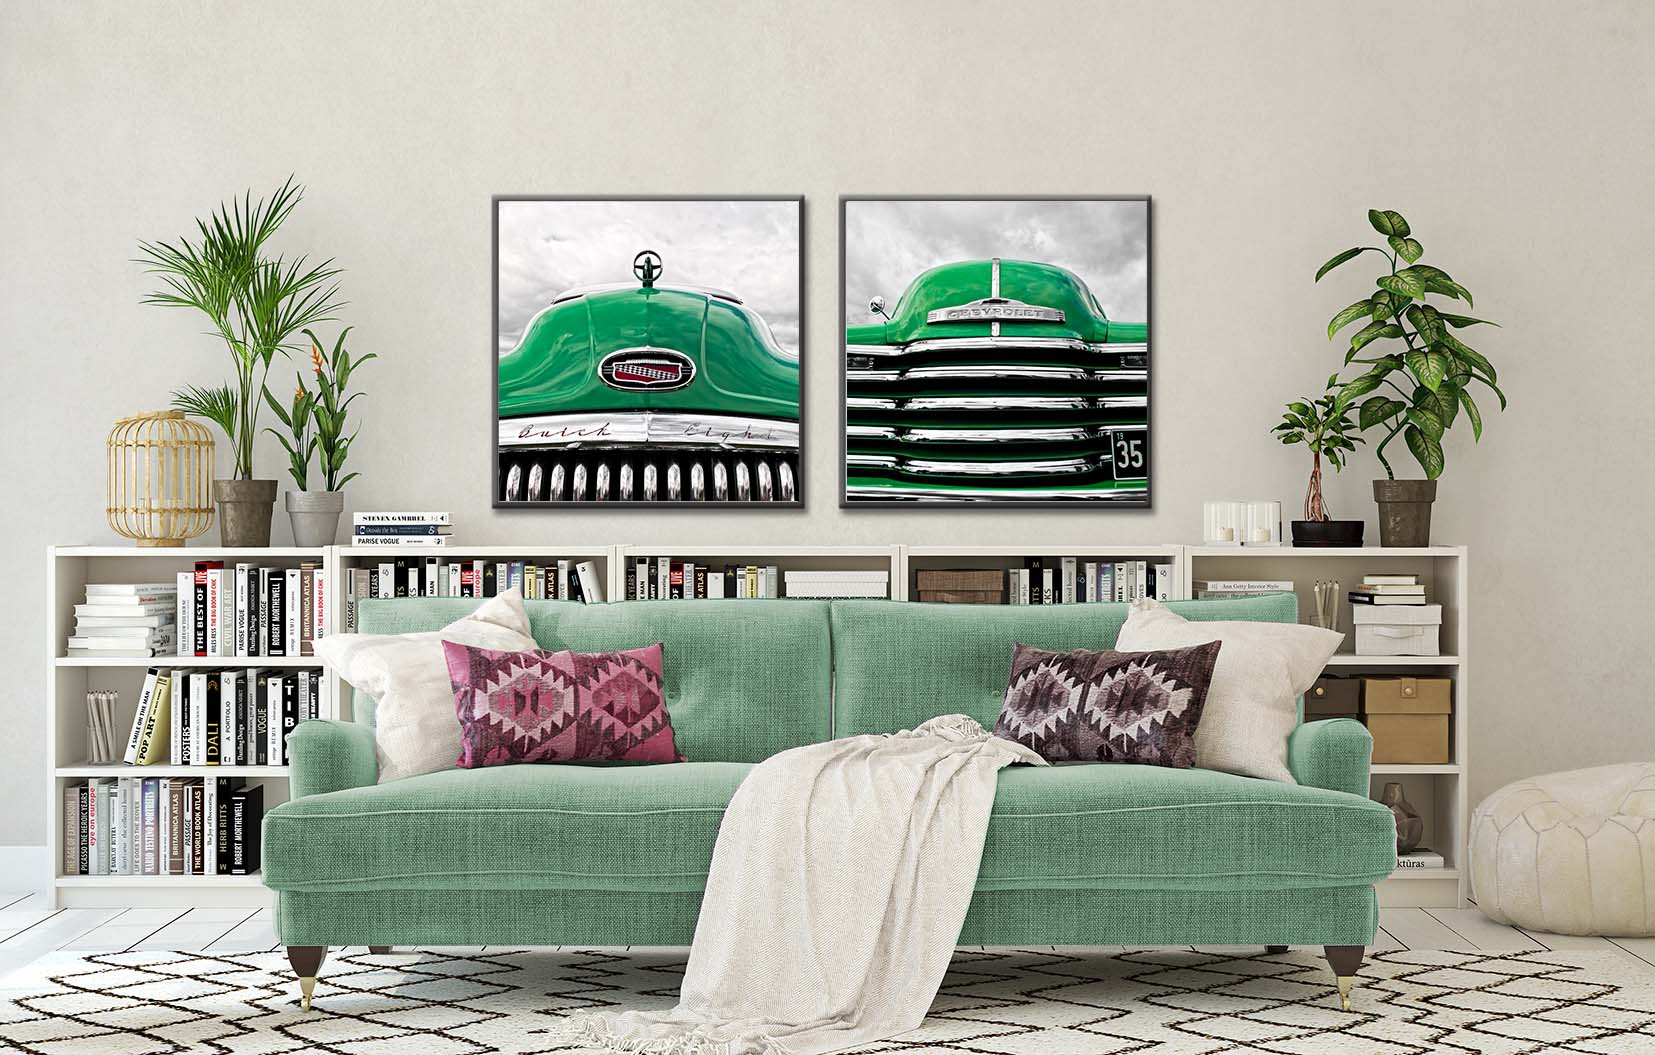 Green Buick print and a green Chevy print. Colour abstract photographic prints of vintage cars by fine art photographer Paul Coghlin. Limited edition photographic prints.